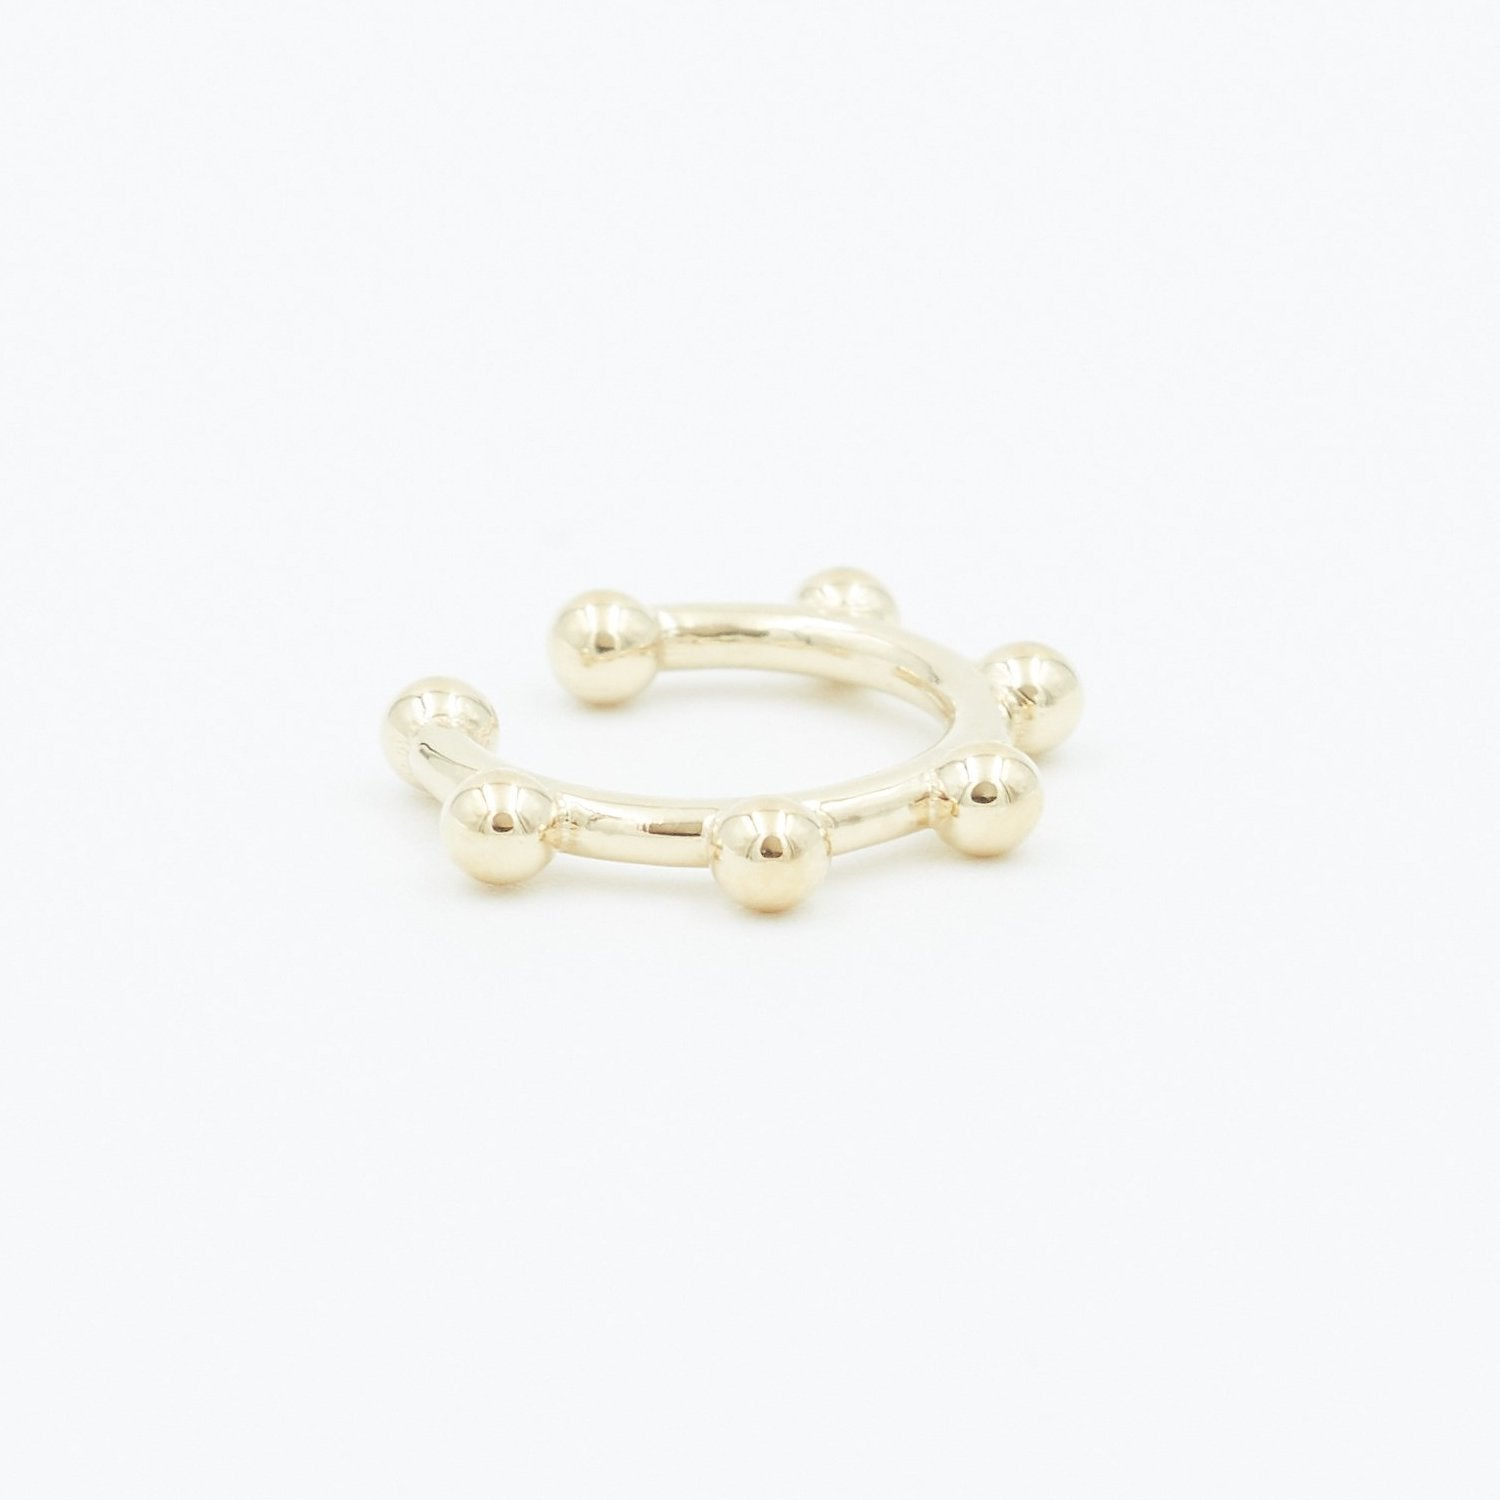 Gold Ball Ear Cuff Jewelry Bayou with Love